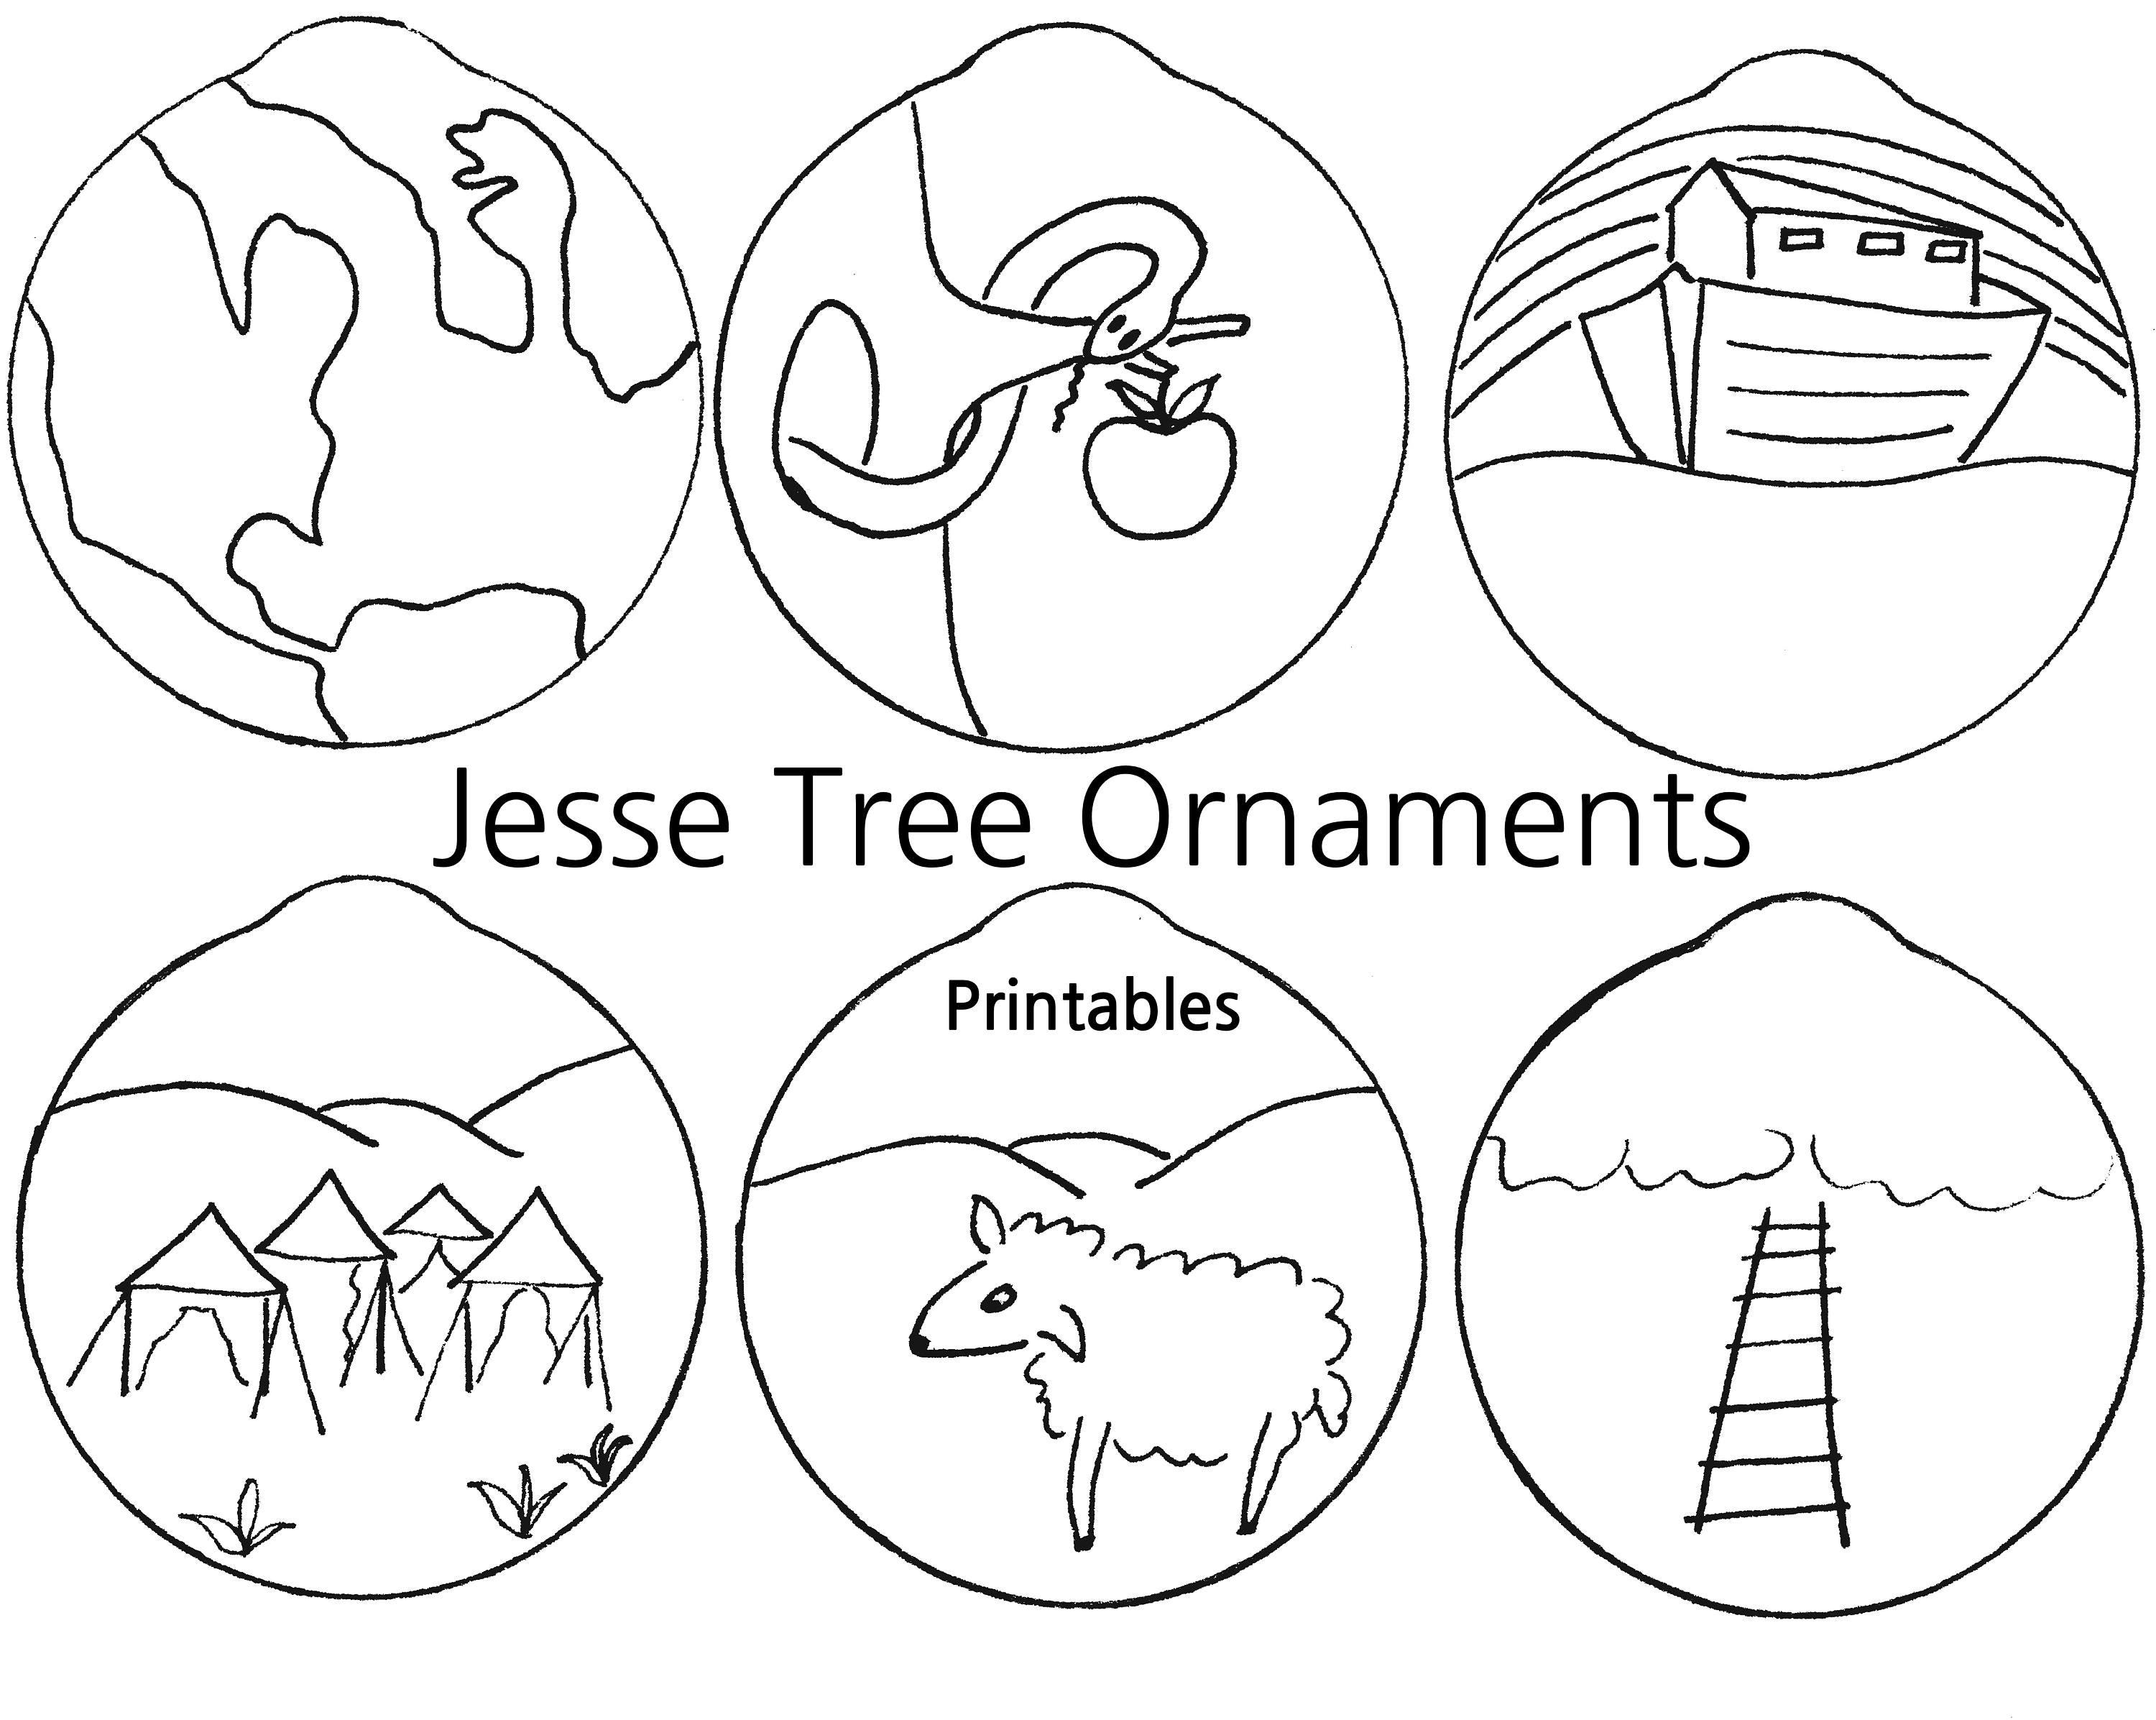 Old Fashioned image intended for printable jesse tree ornaments